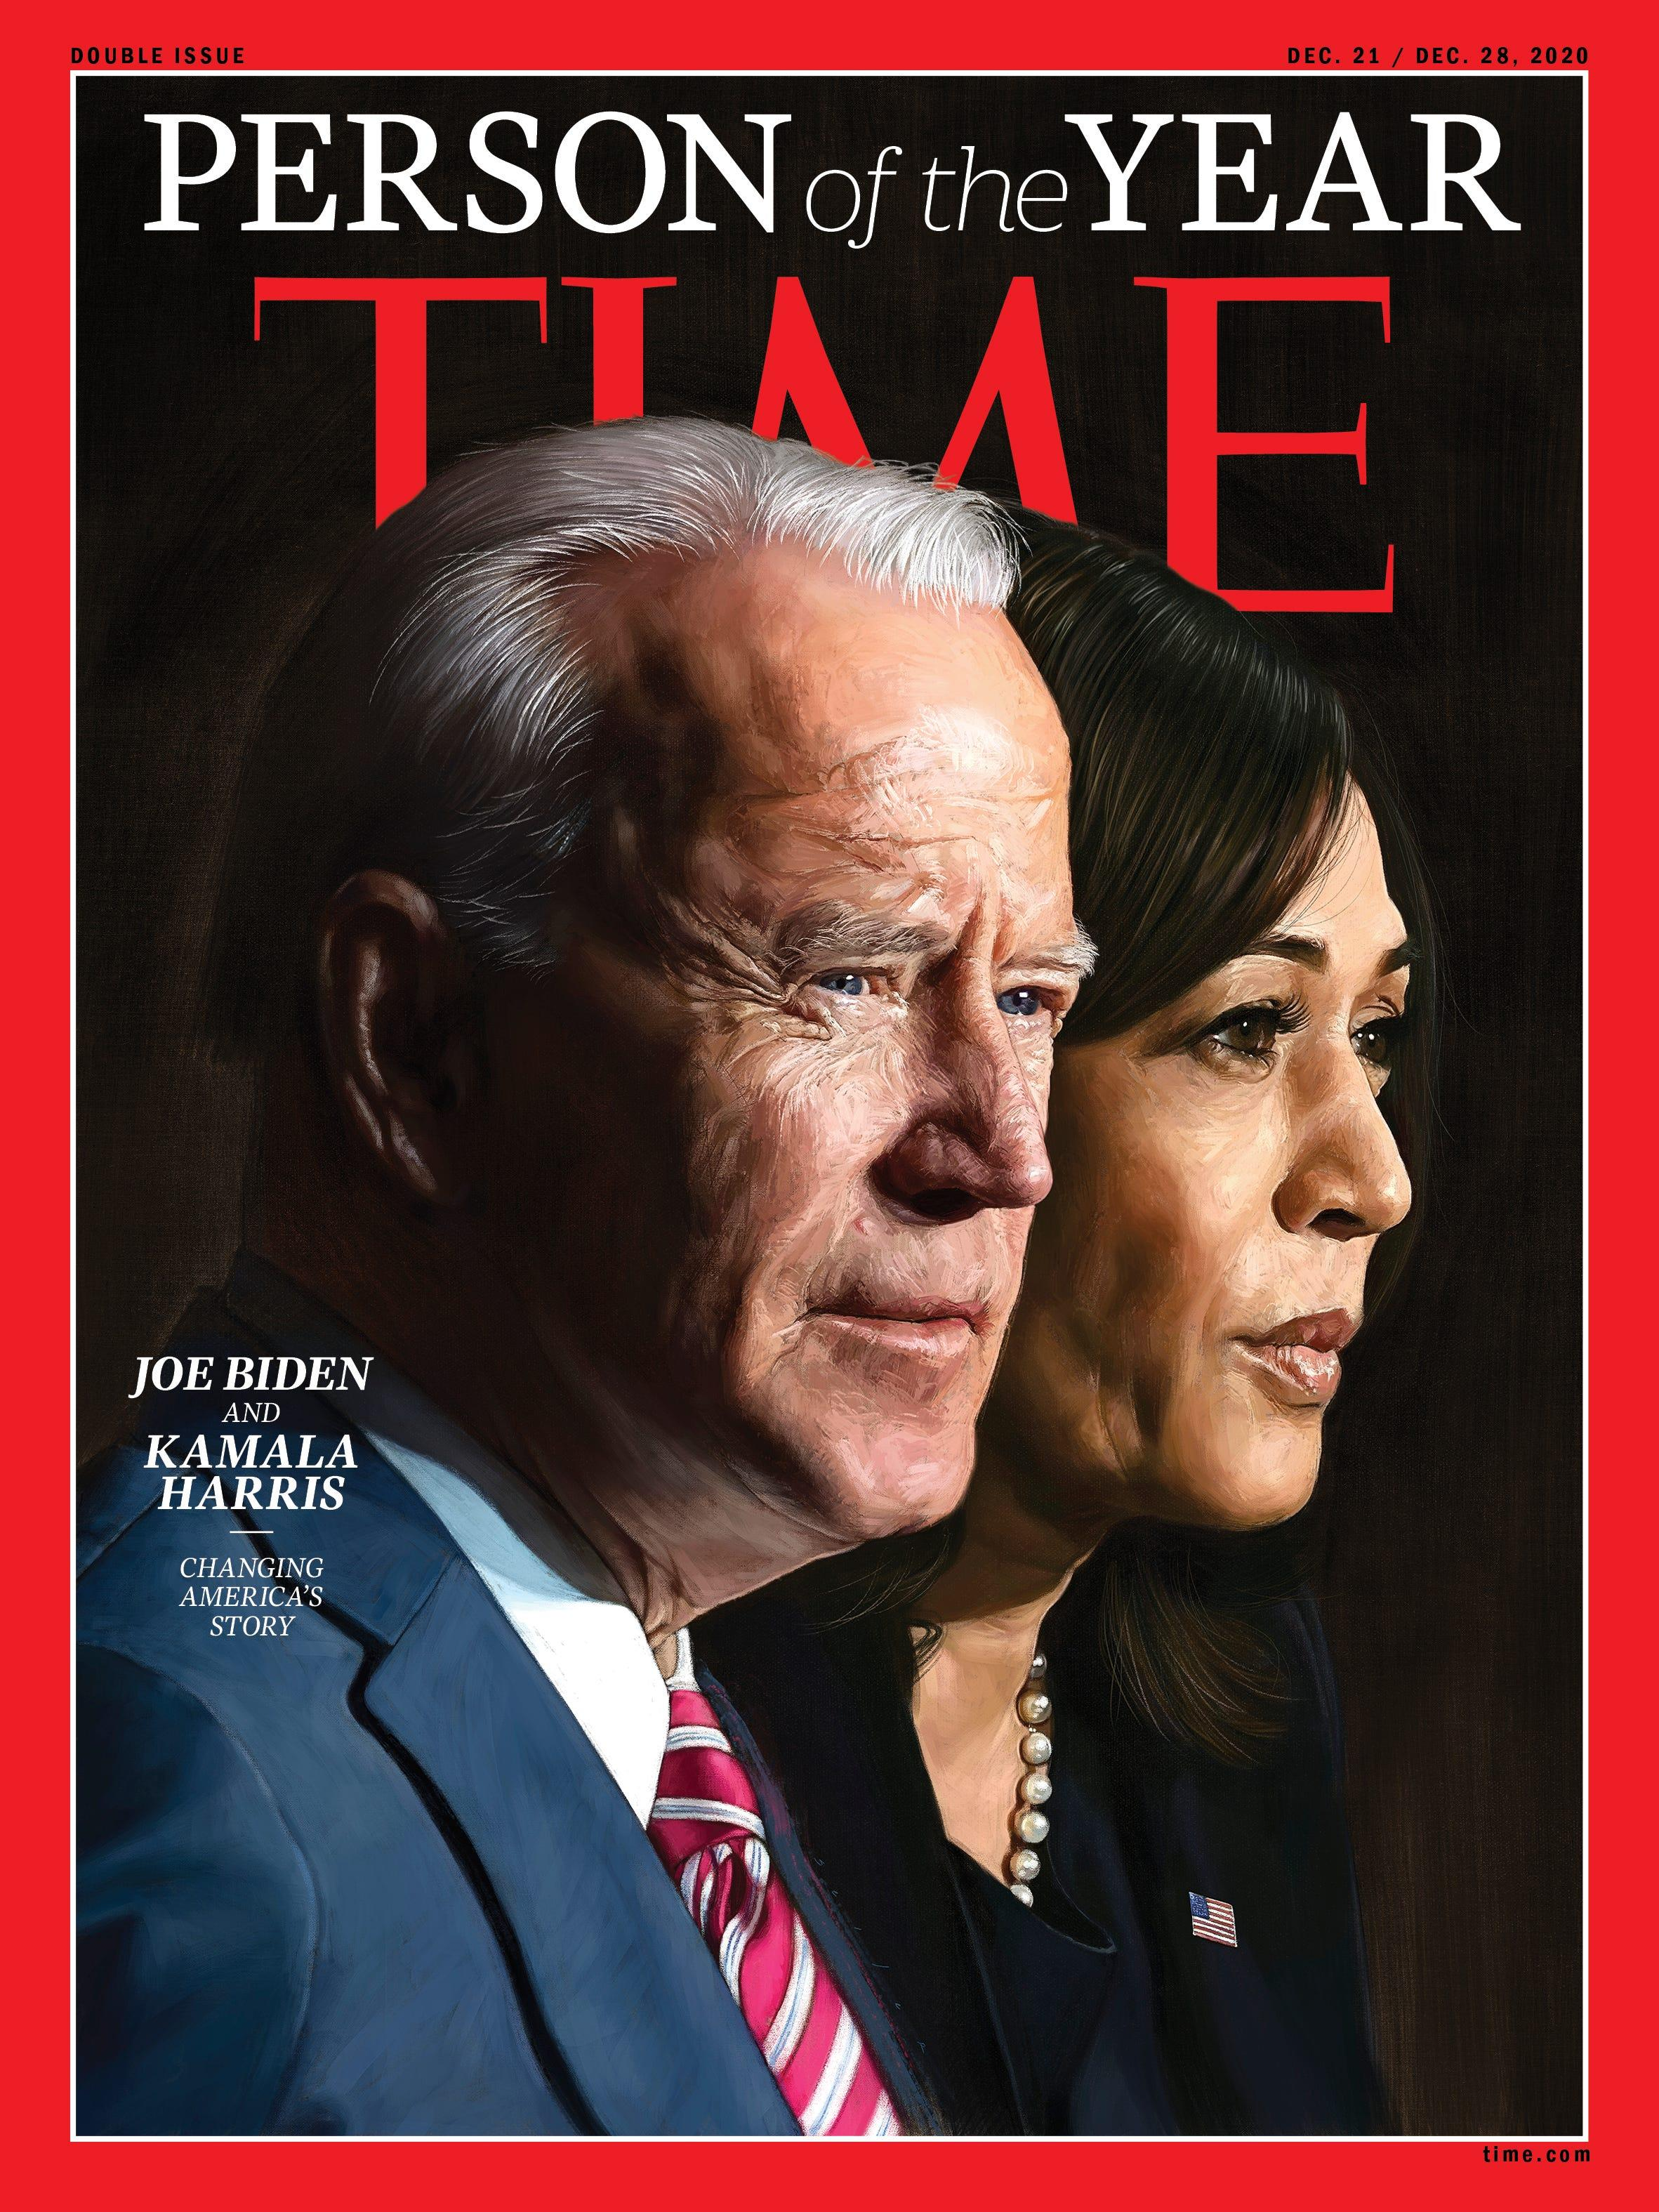 Fact check: Altered image makes false claim about Time magazine's Person of the Year